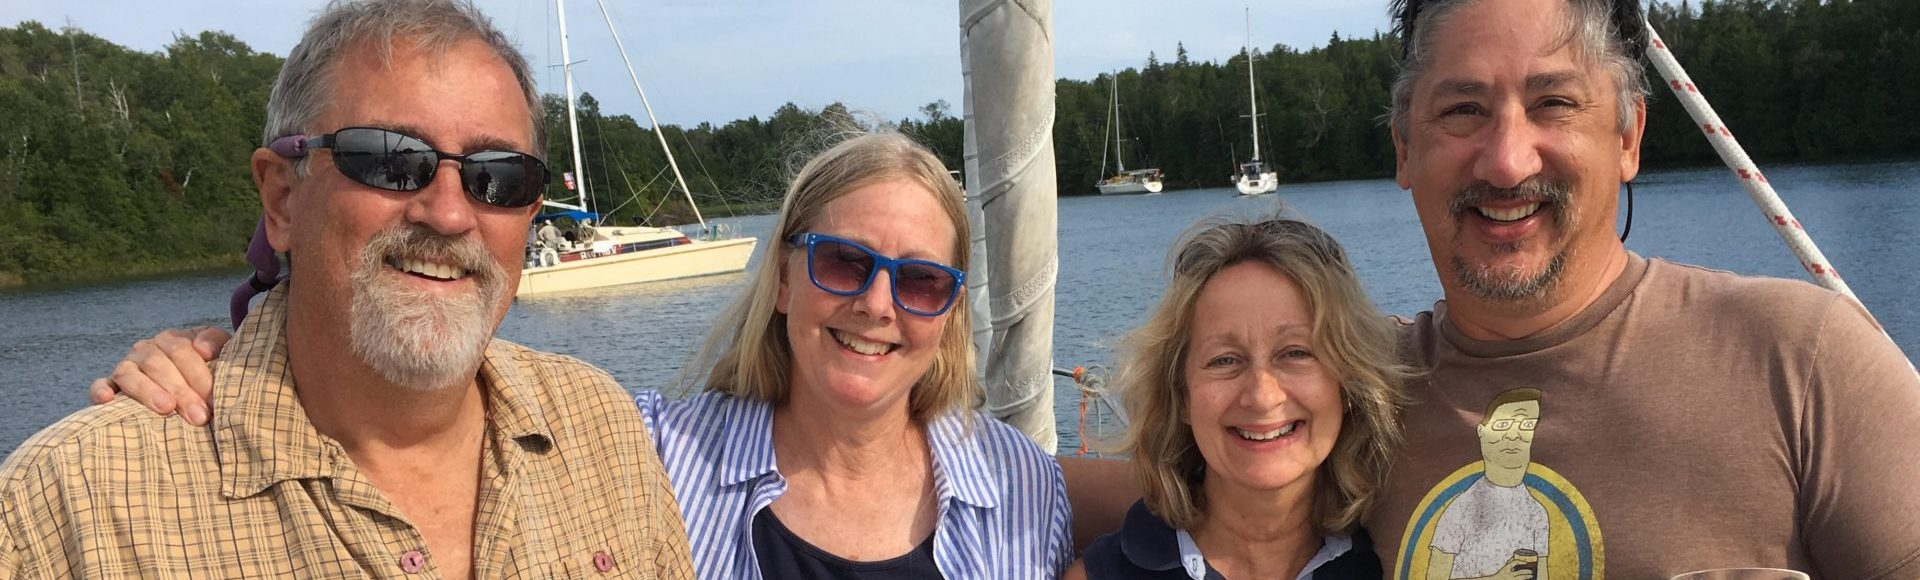 Cruising – The Mundane and the Fun in the North Channel